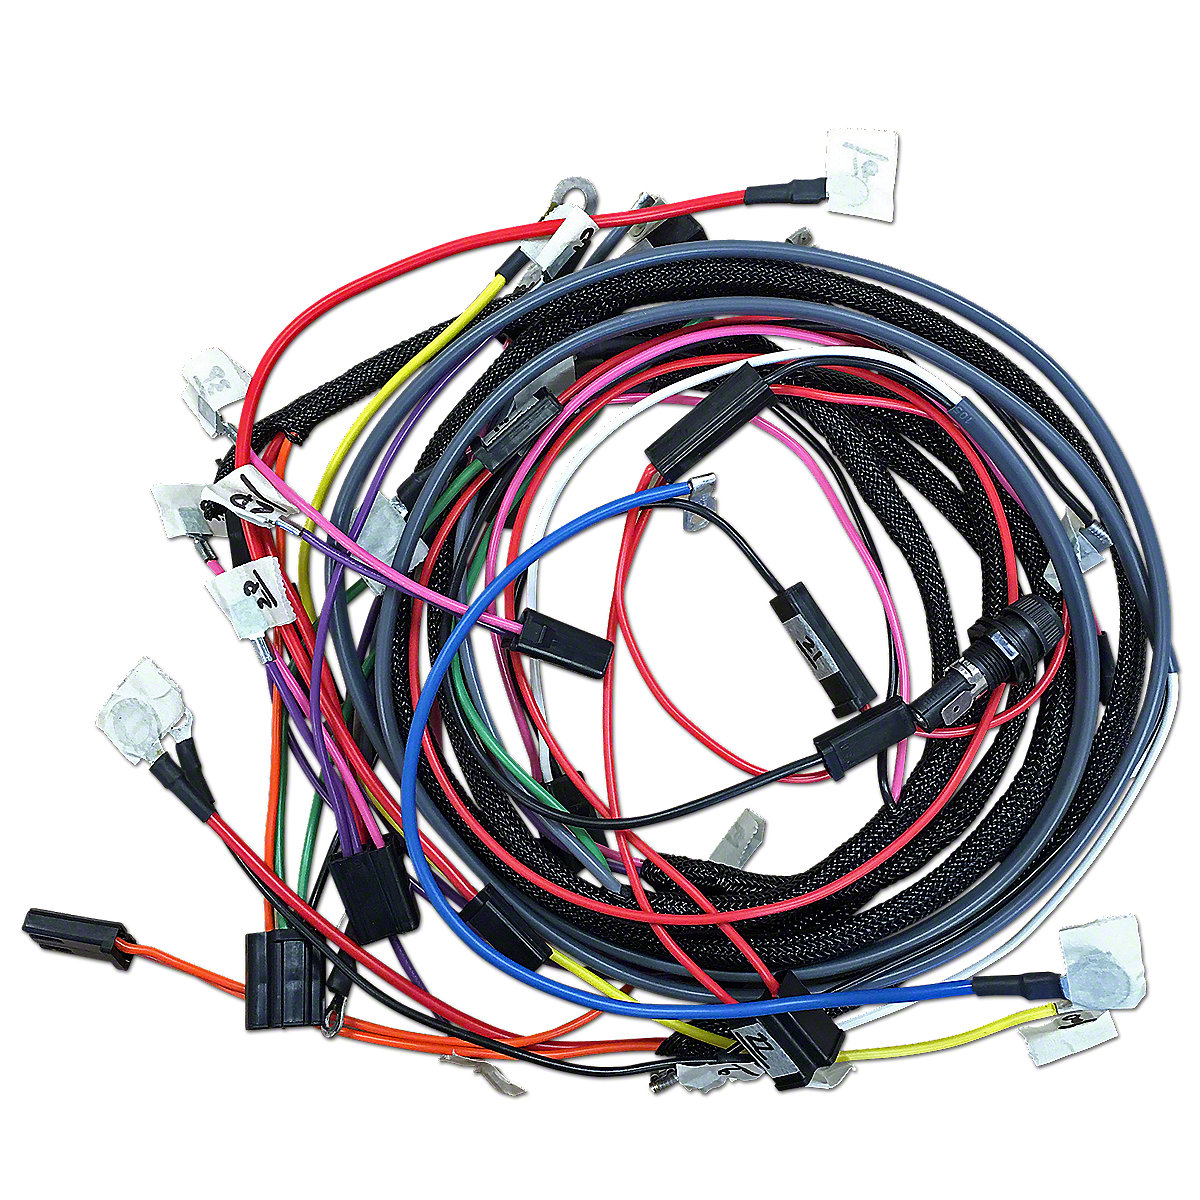 restoration quality wiring harness ihs3518